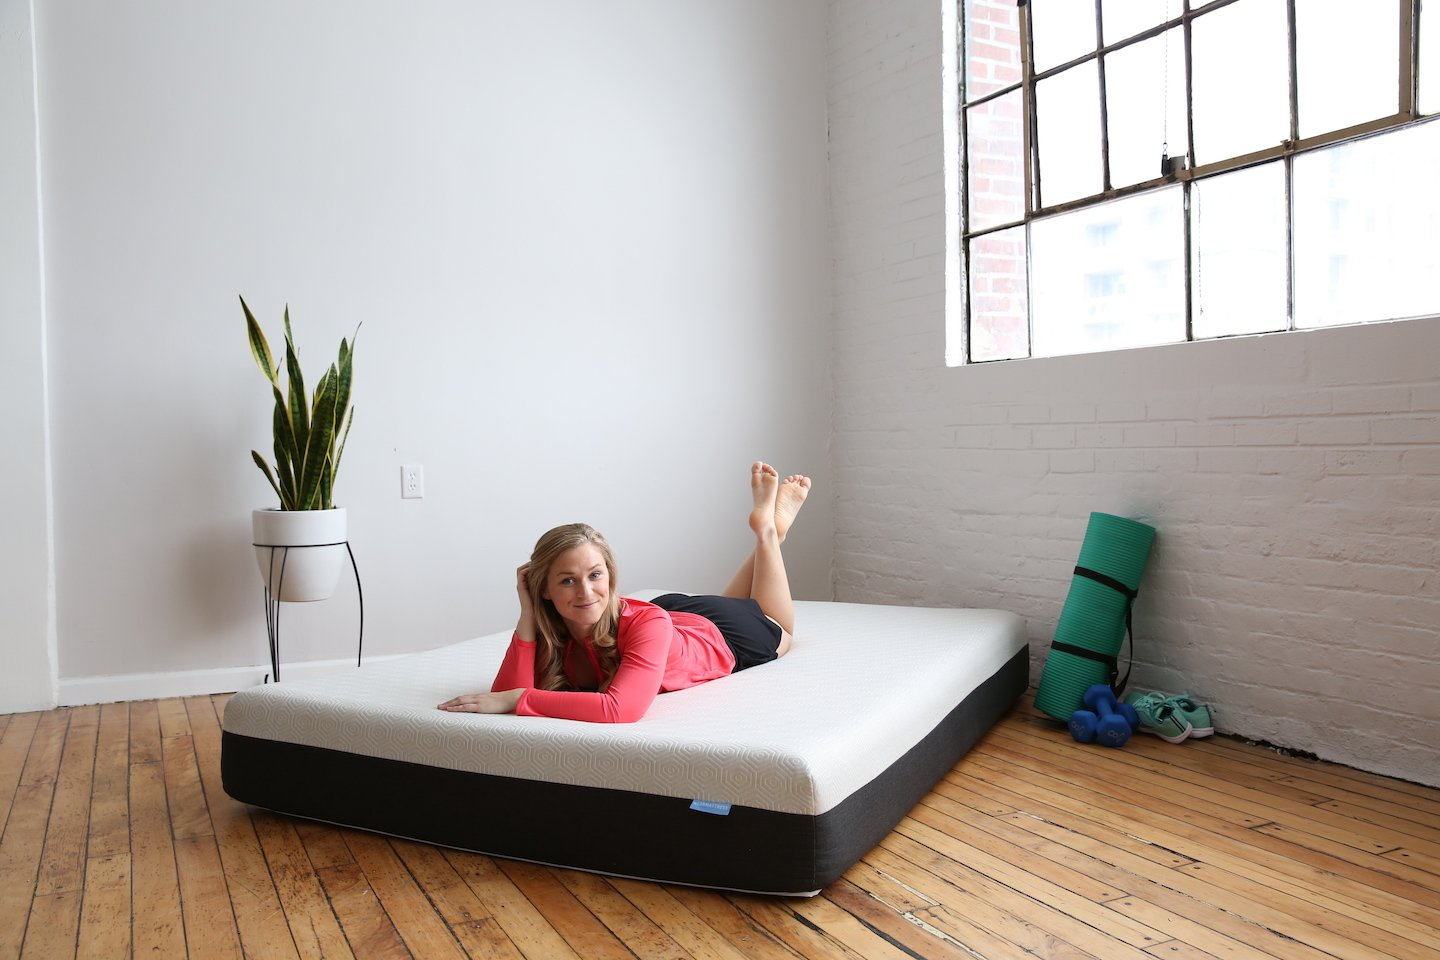 LUCID Best Mattresses Under $1000 Review by www.snoremagazine.com